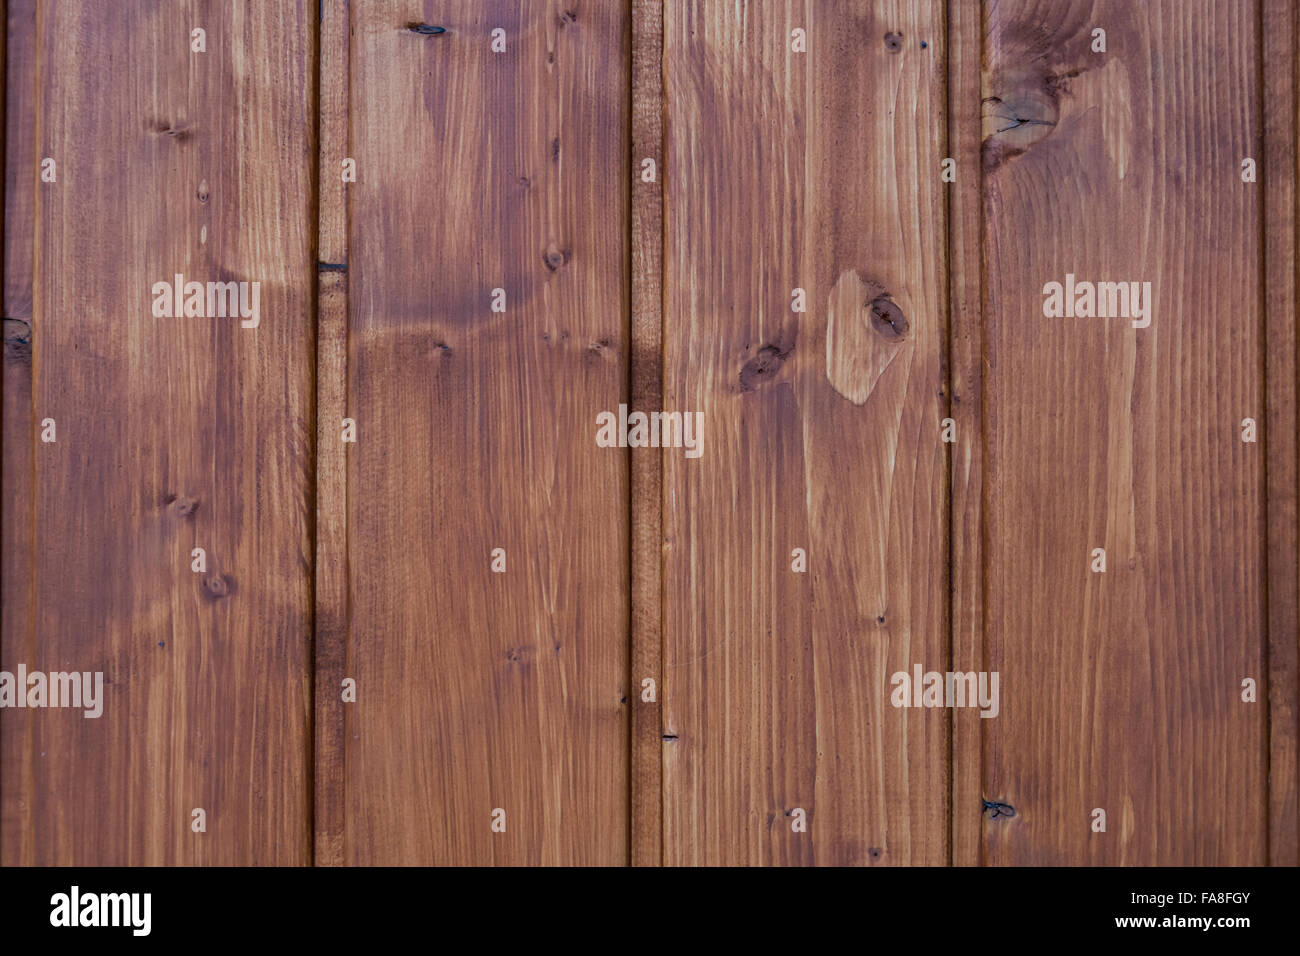 Texture, background, pattern or wallpaper of dark vertical wood planks - Stock Image